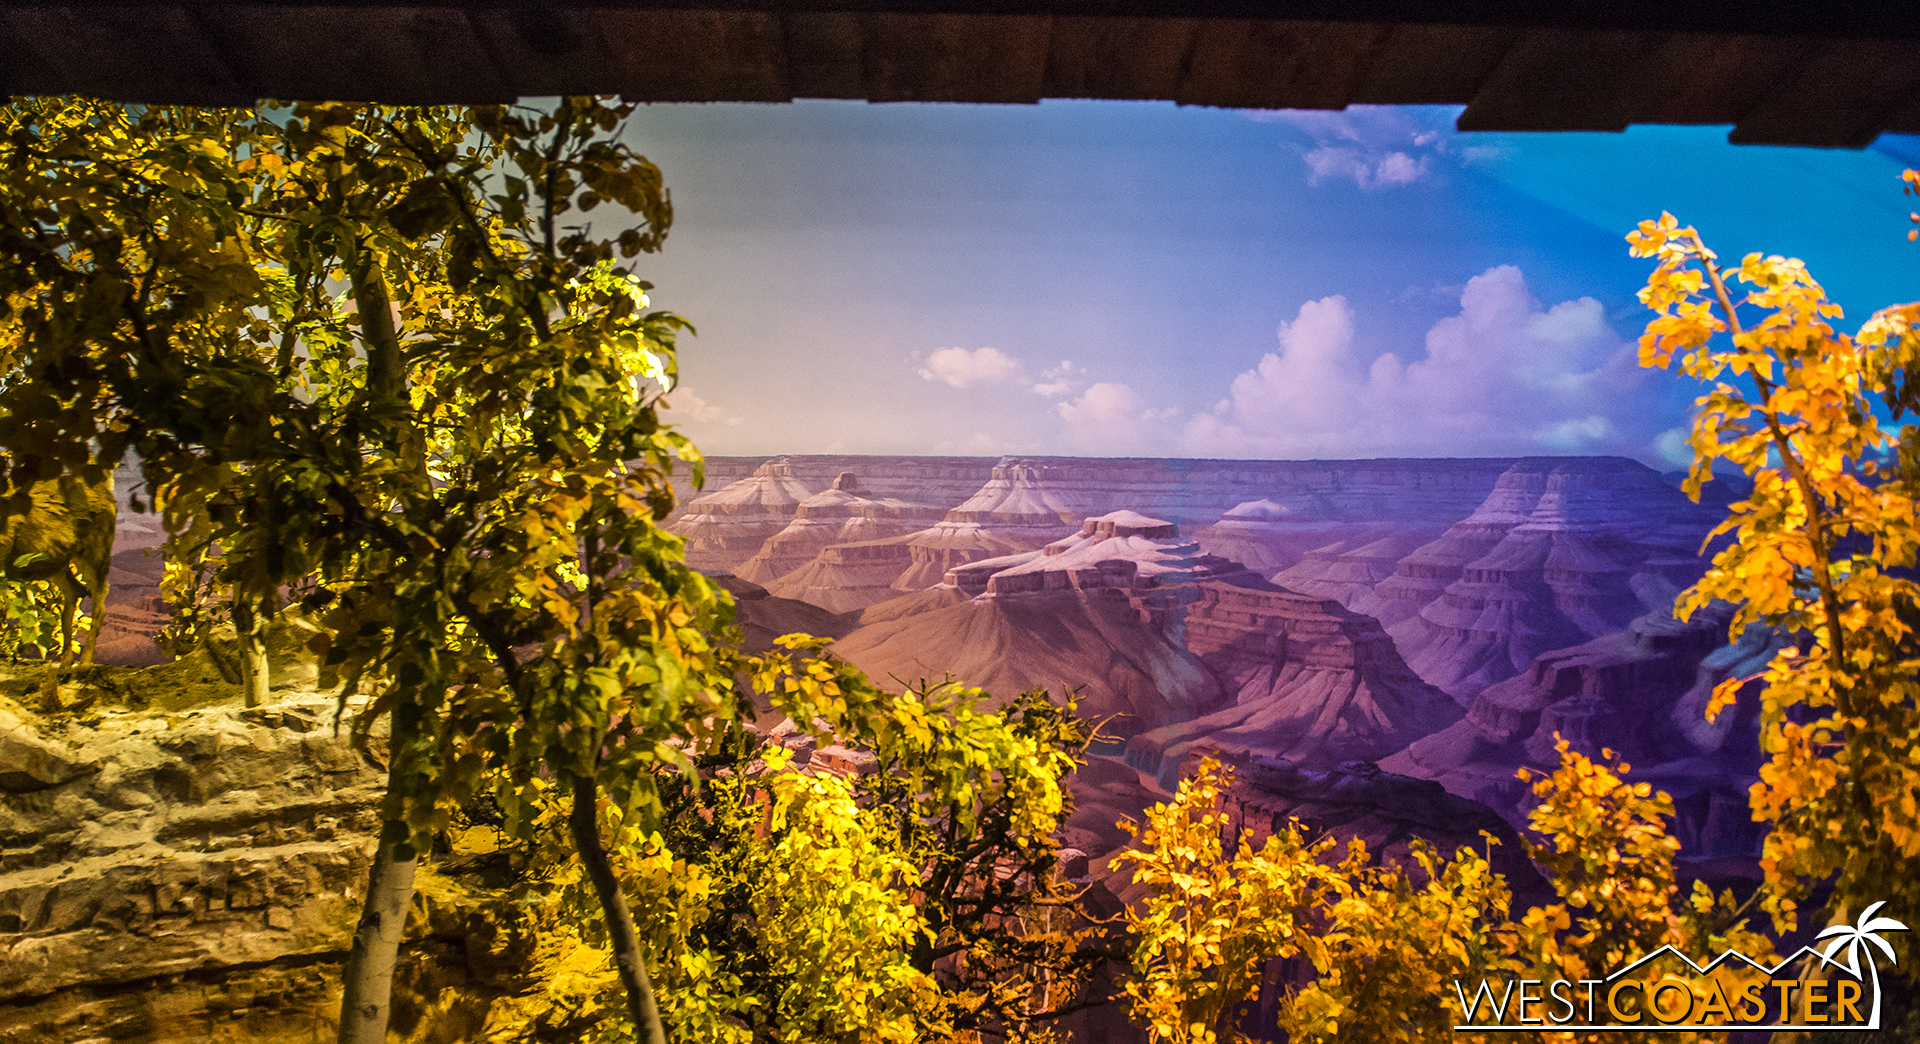 The diorama has been subtly enhanced by video mapping projections that cast birds flying in the background, weather changes, and slight scenic elements.